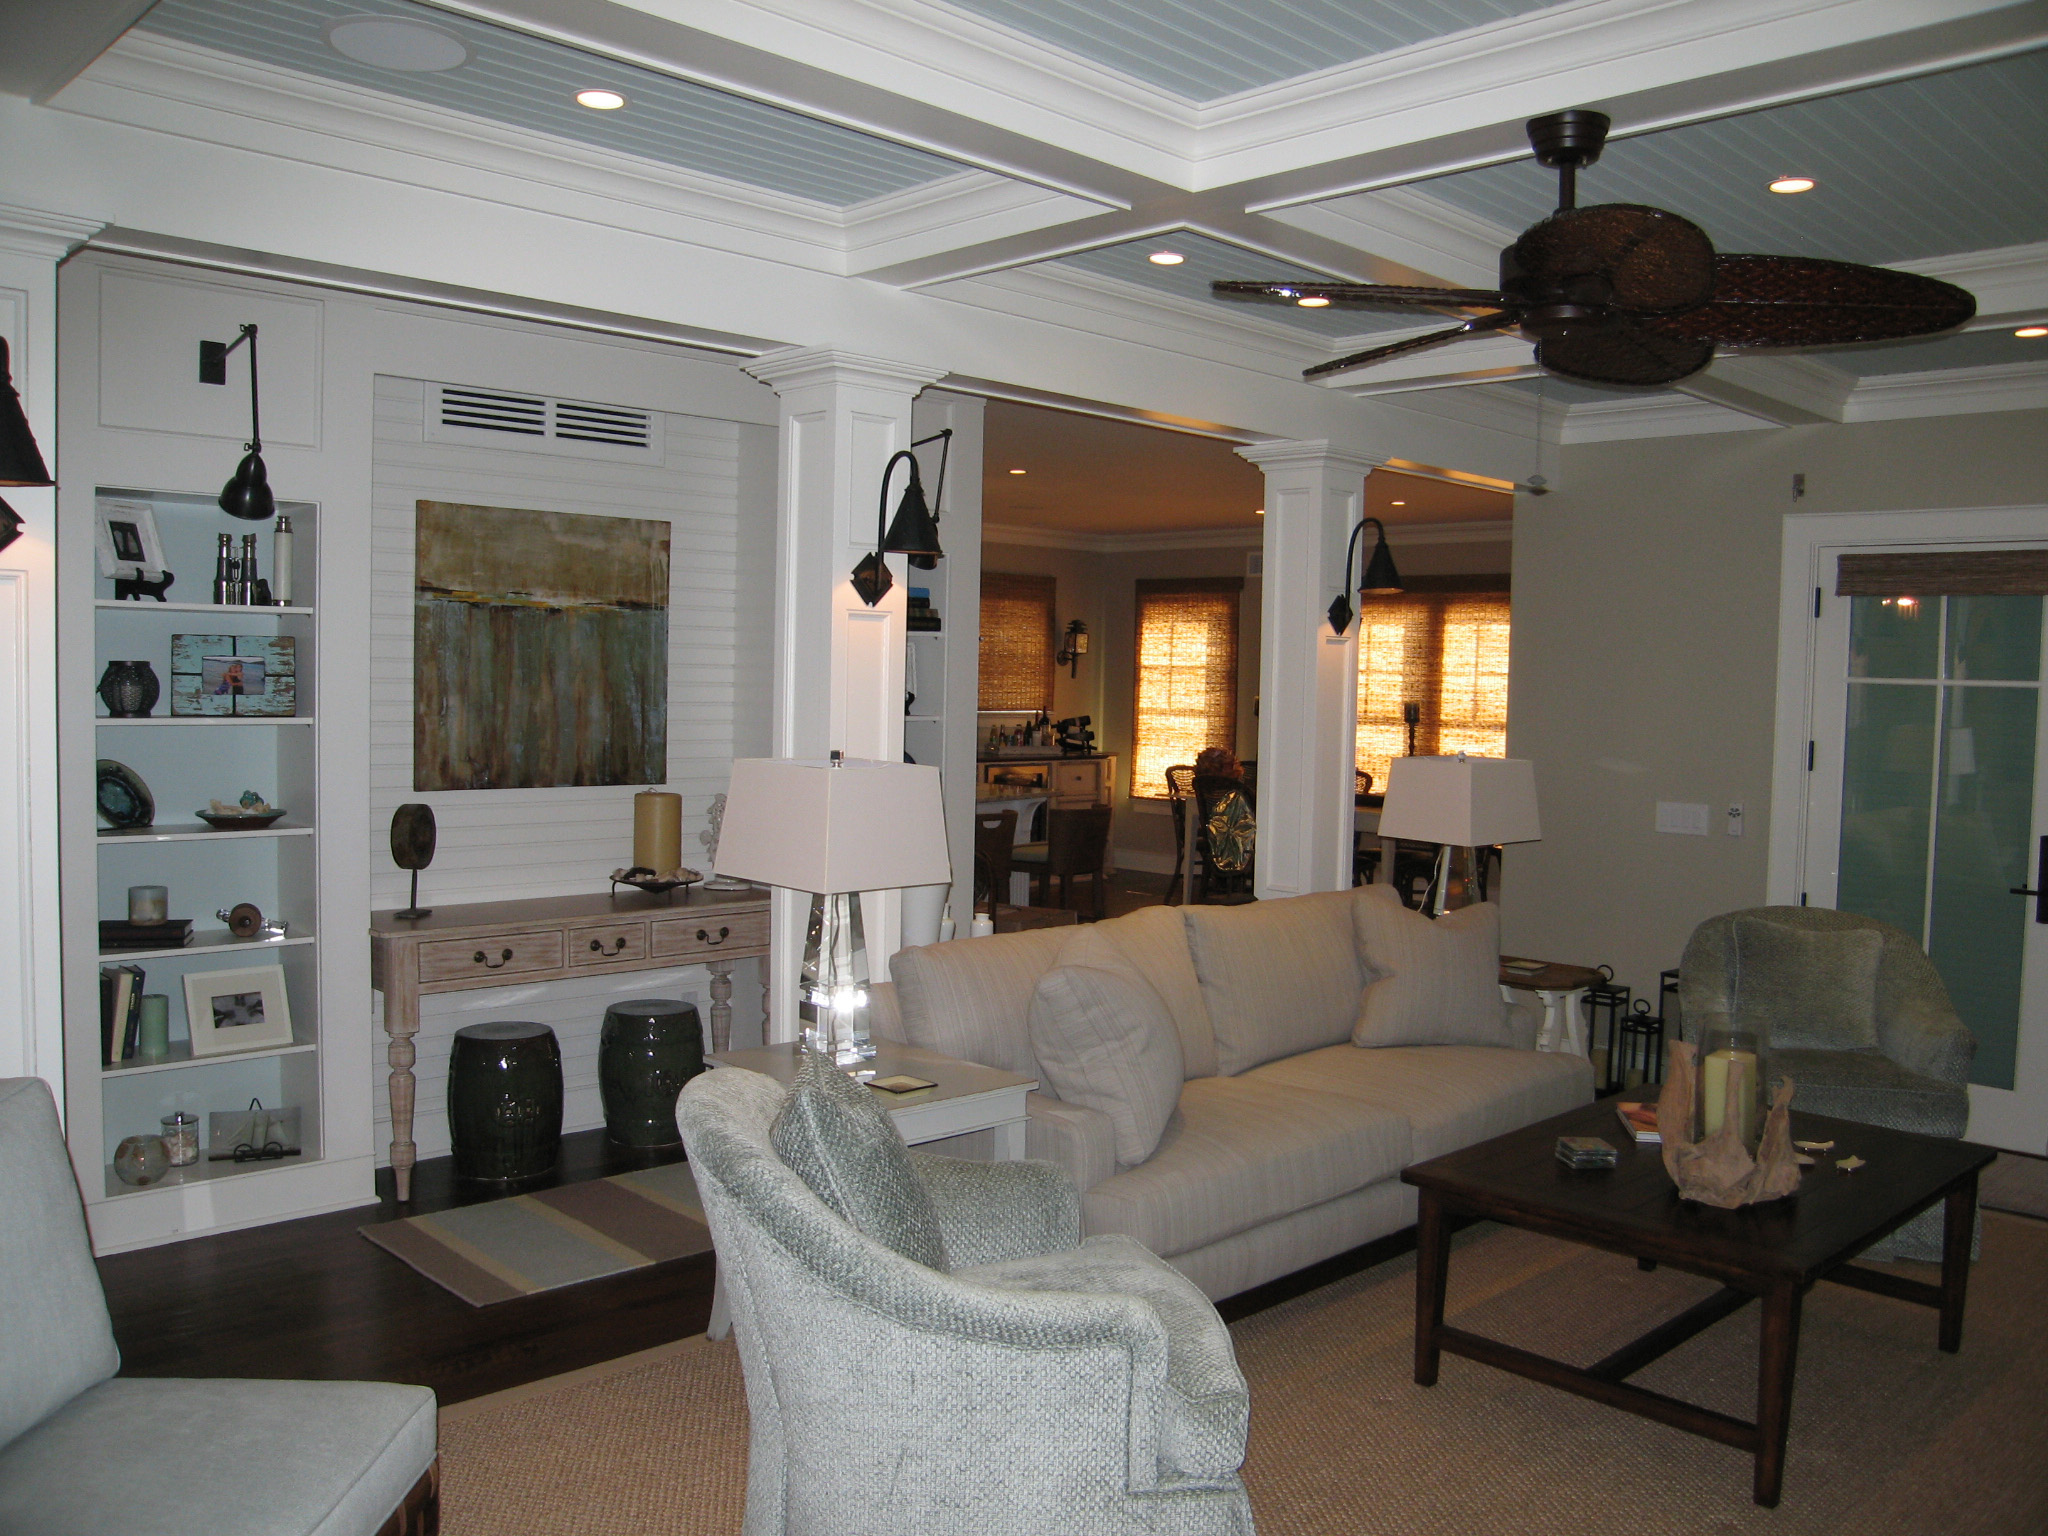 custom kitchens. Cabinetry. Custom Cabinetry Kitchens